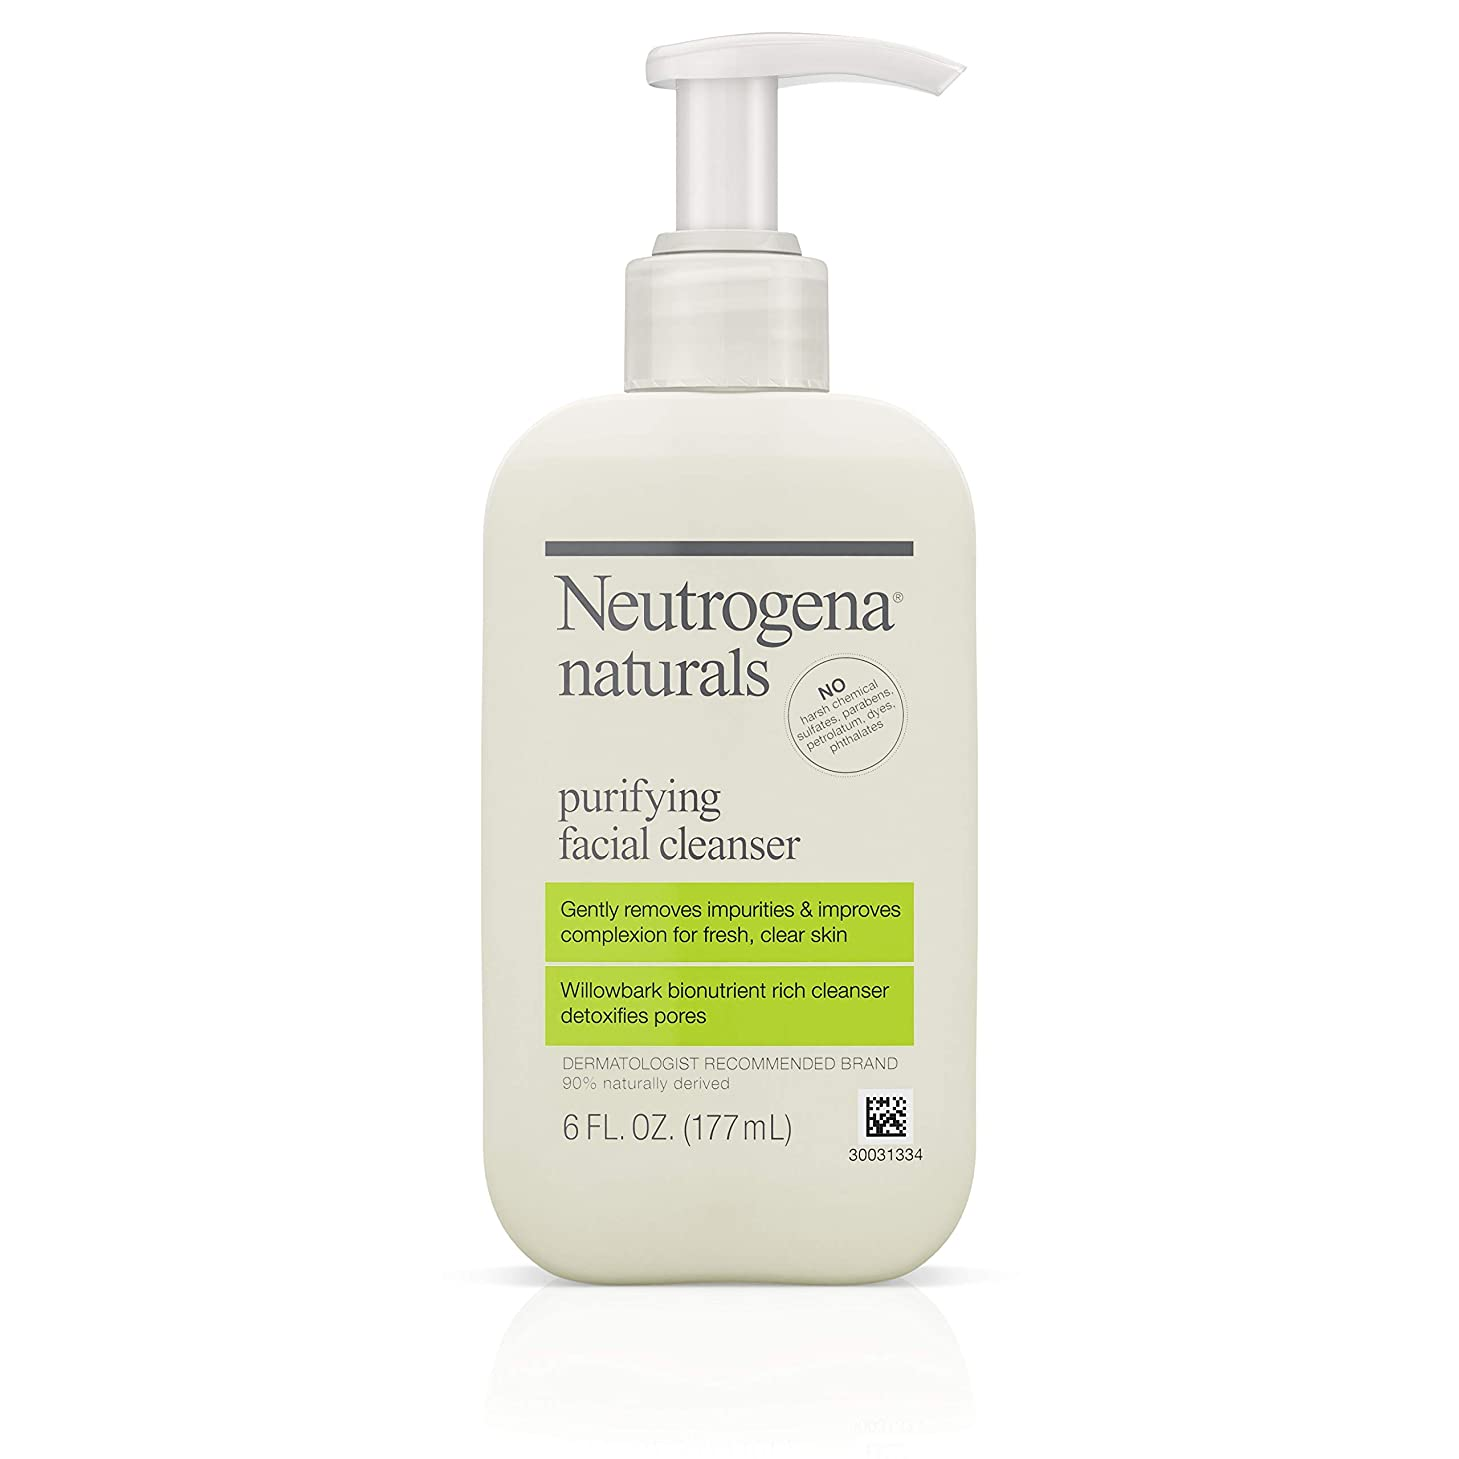 初心者望みのれんNeutrogena Naturals Purifying Facial Cleanser 175 ml (並行輸入品)